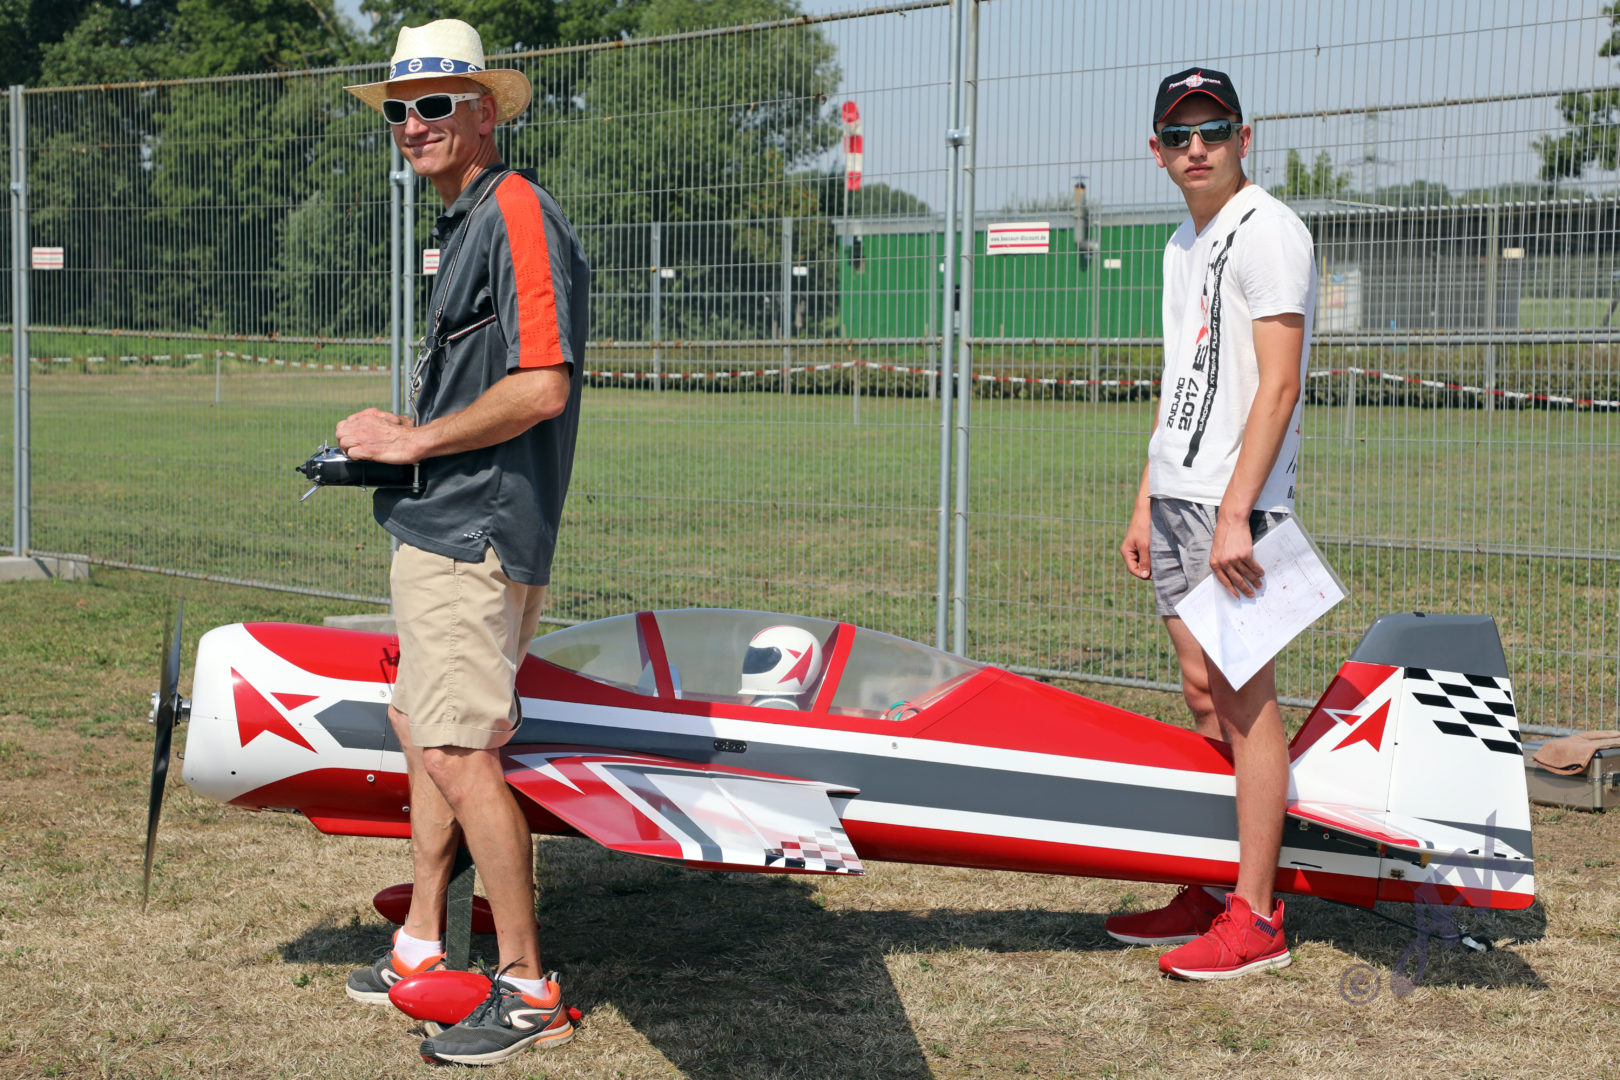 Results and impressions from EAC in Gommersheim